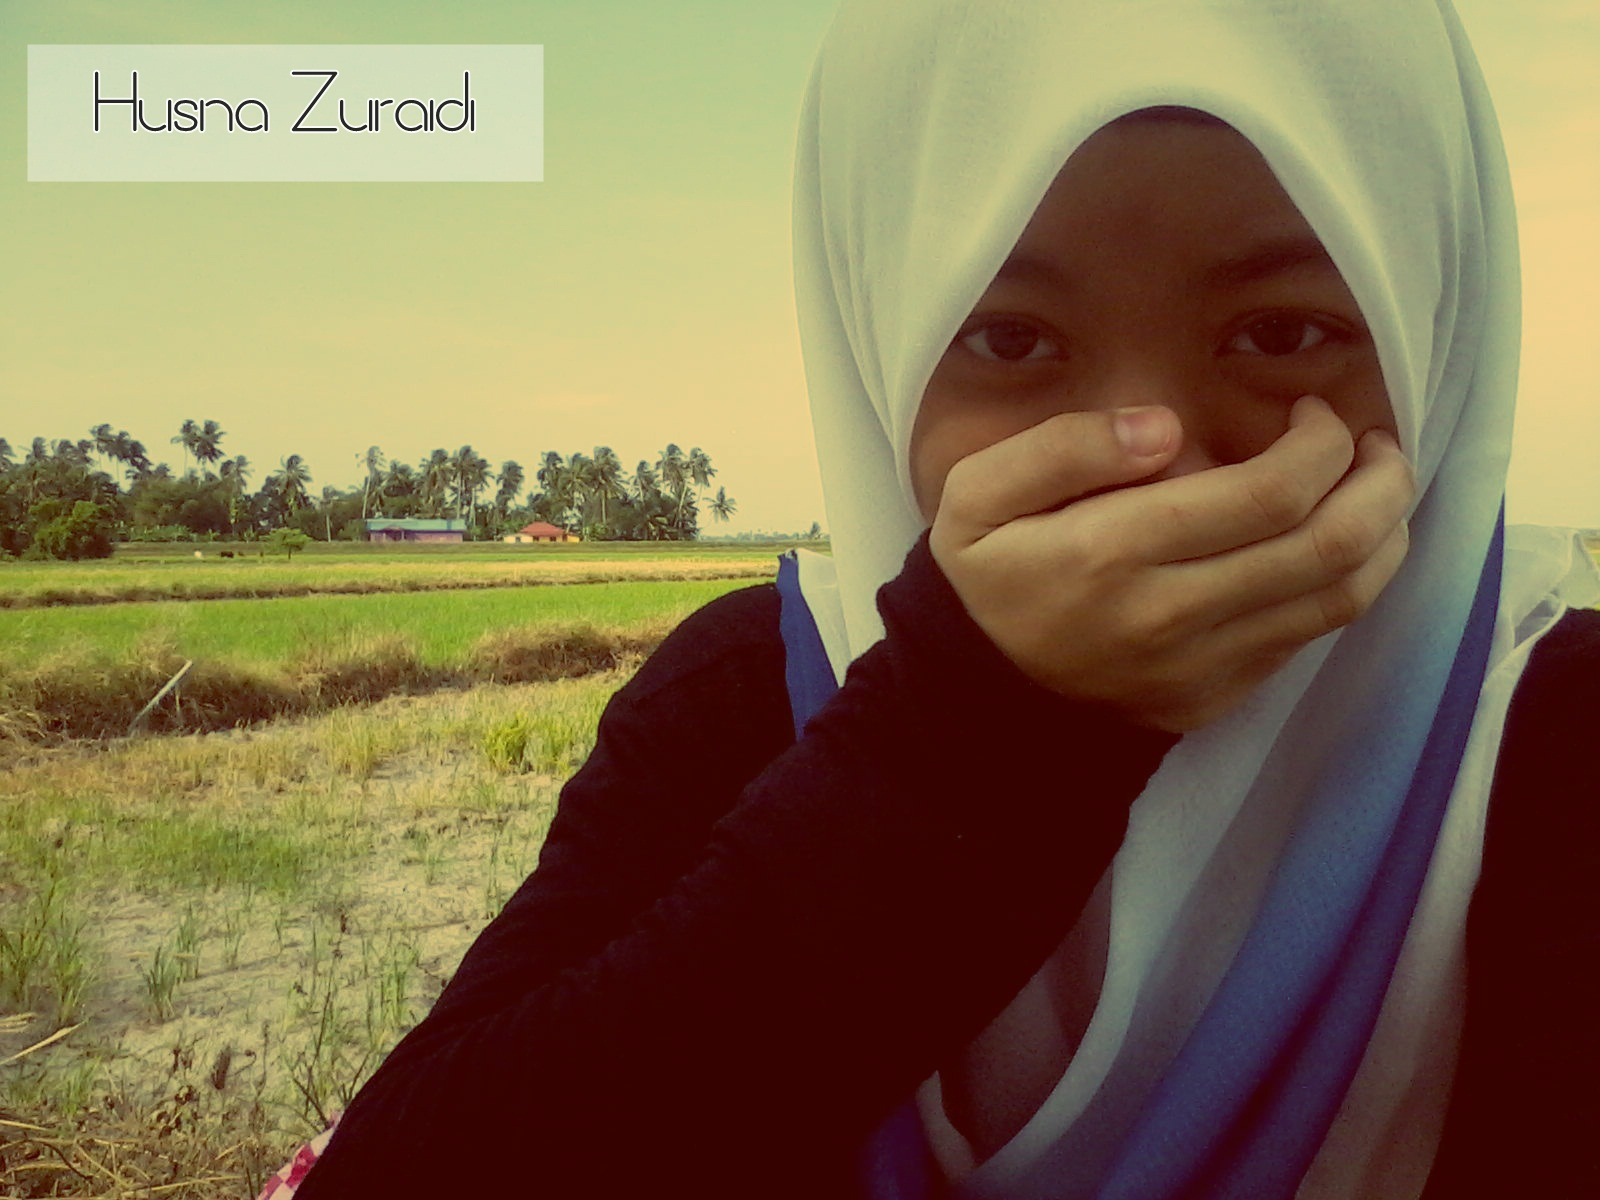 husna_zuraidi's pretty face